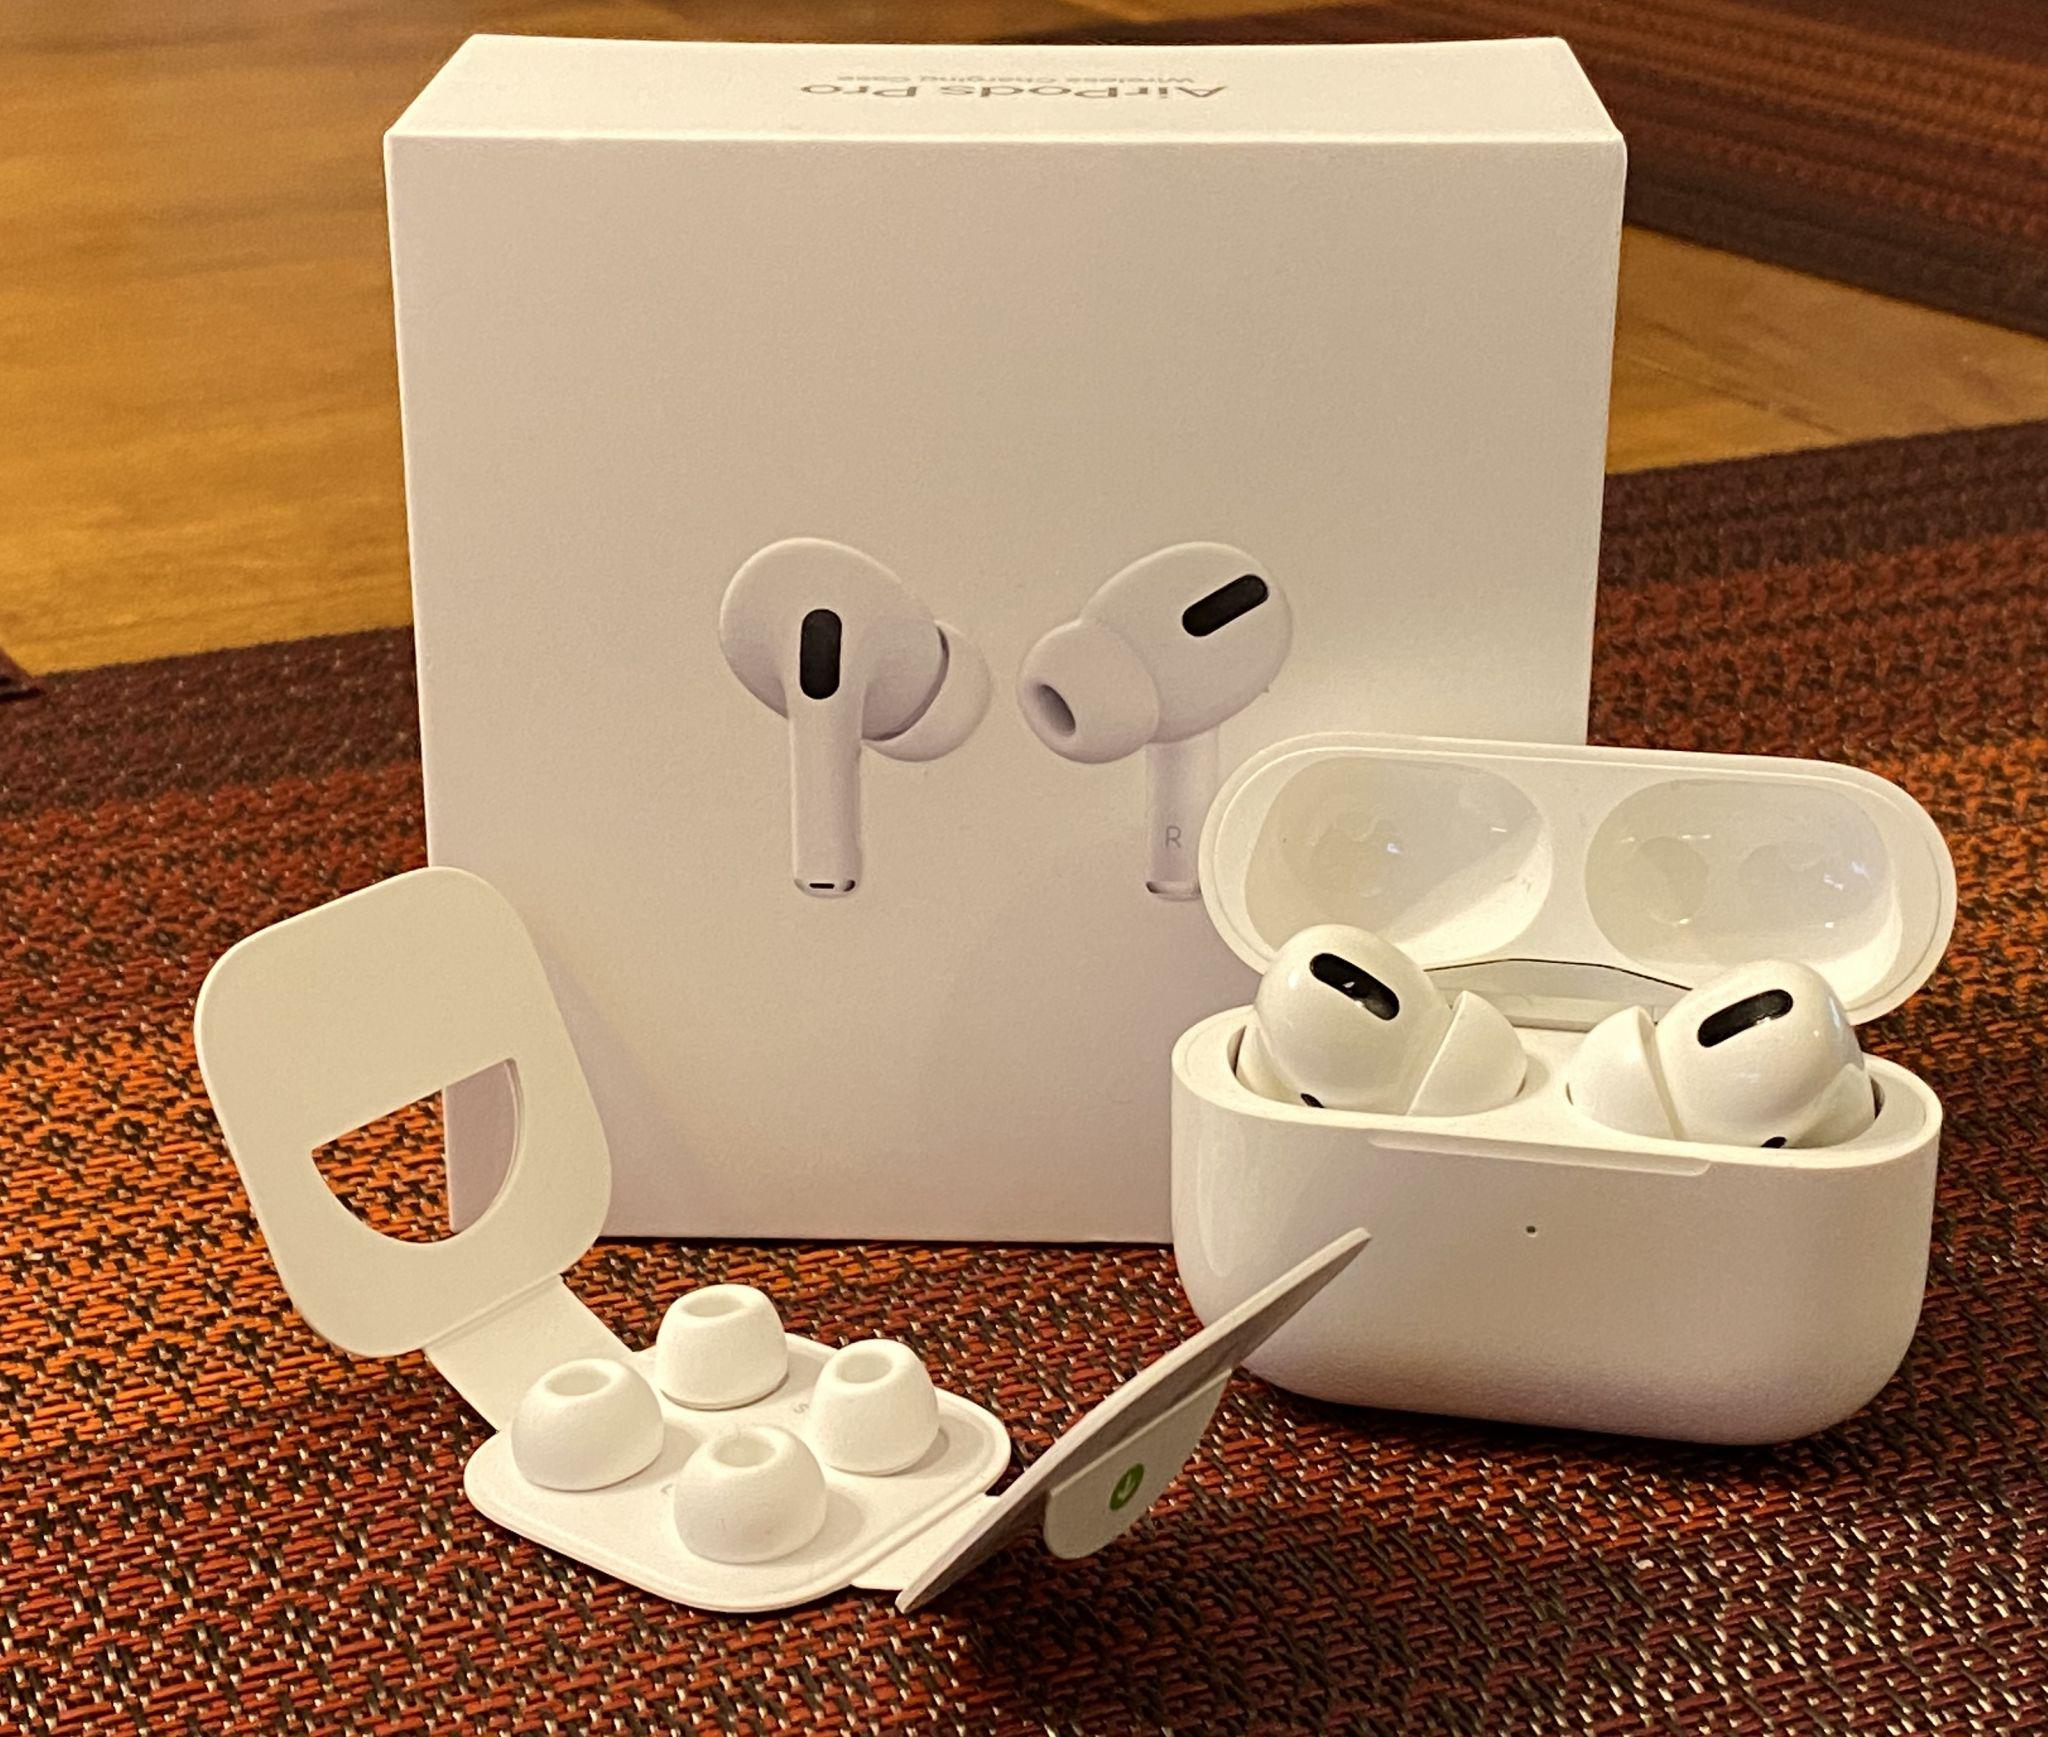 At 250 Are Apple S Airpods Pro Worth It Houstonchronicle Com